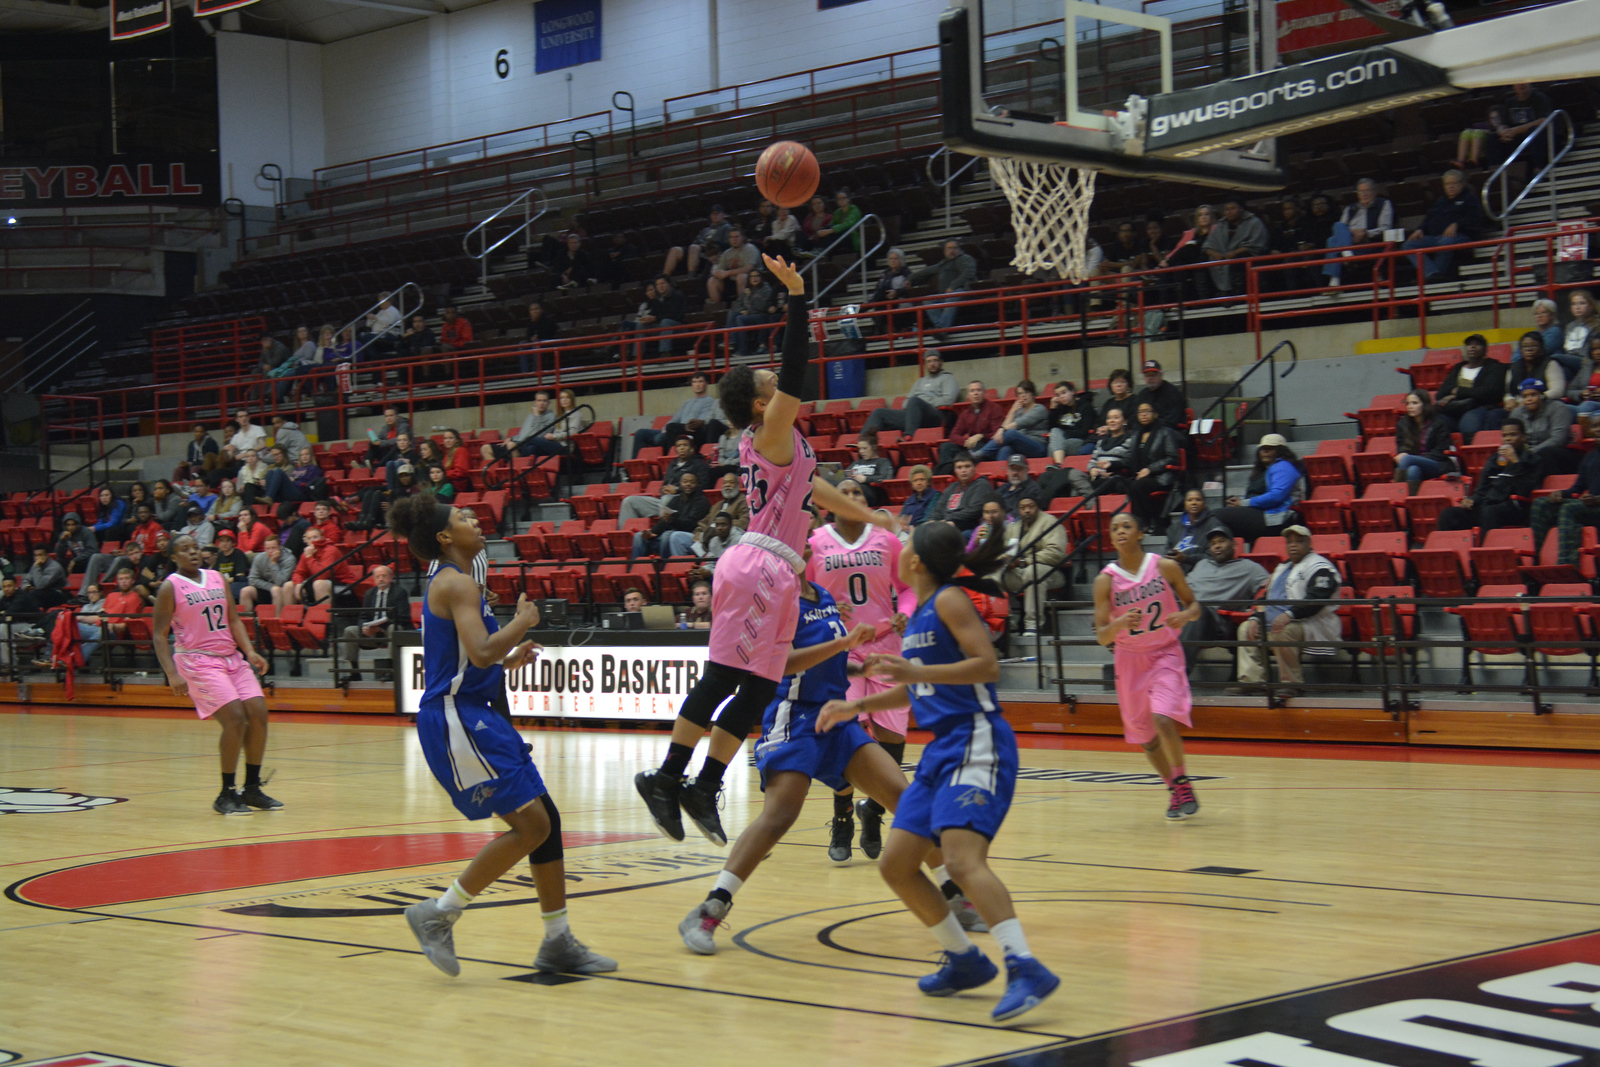 Number 25, Alexus Hill shooting the ball